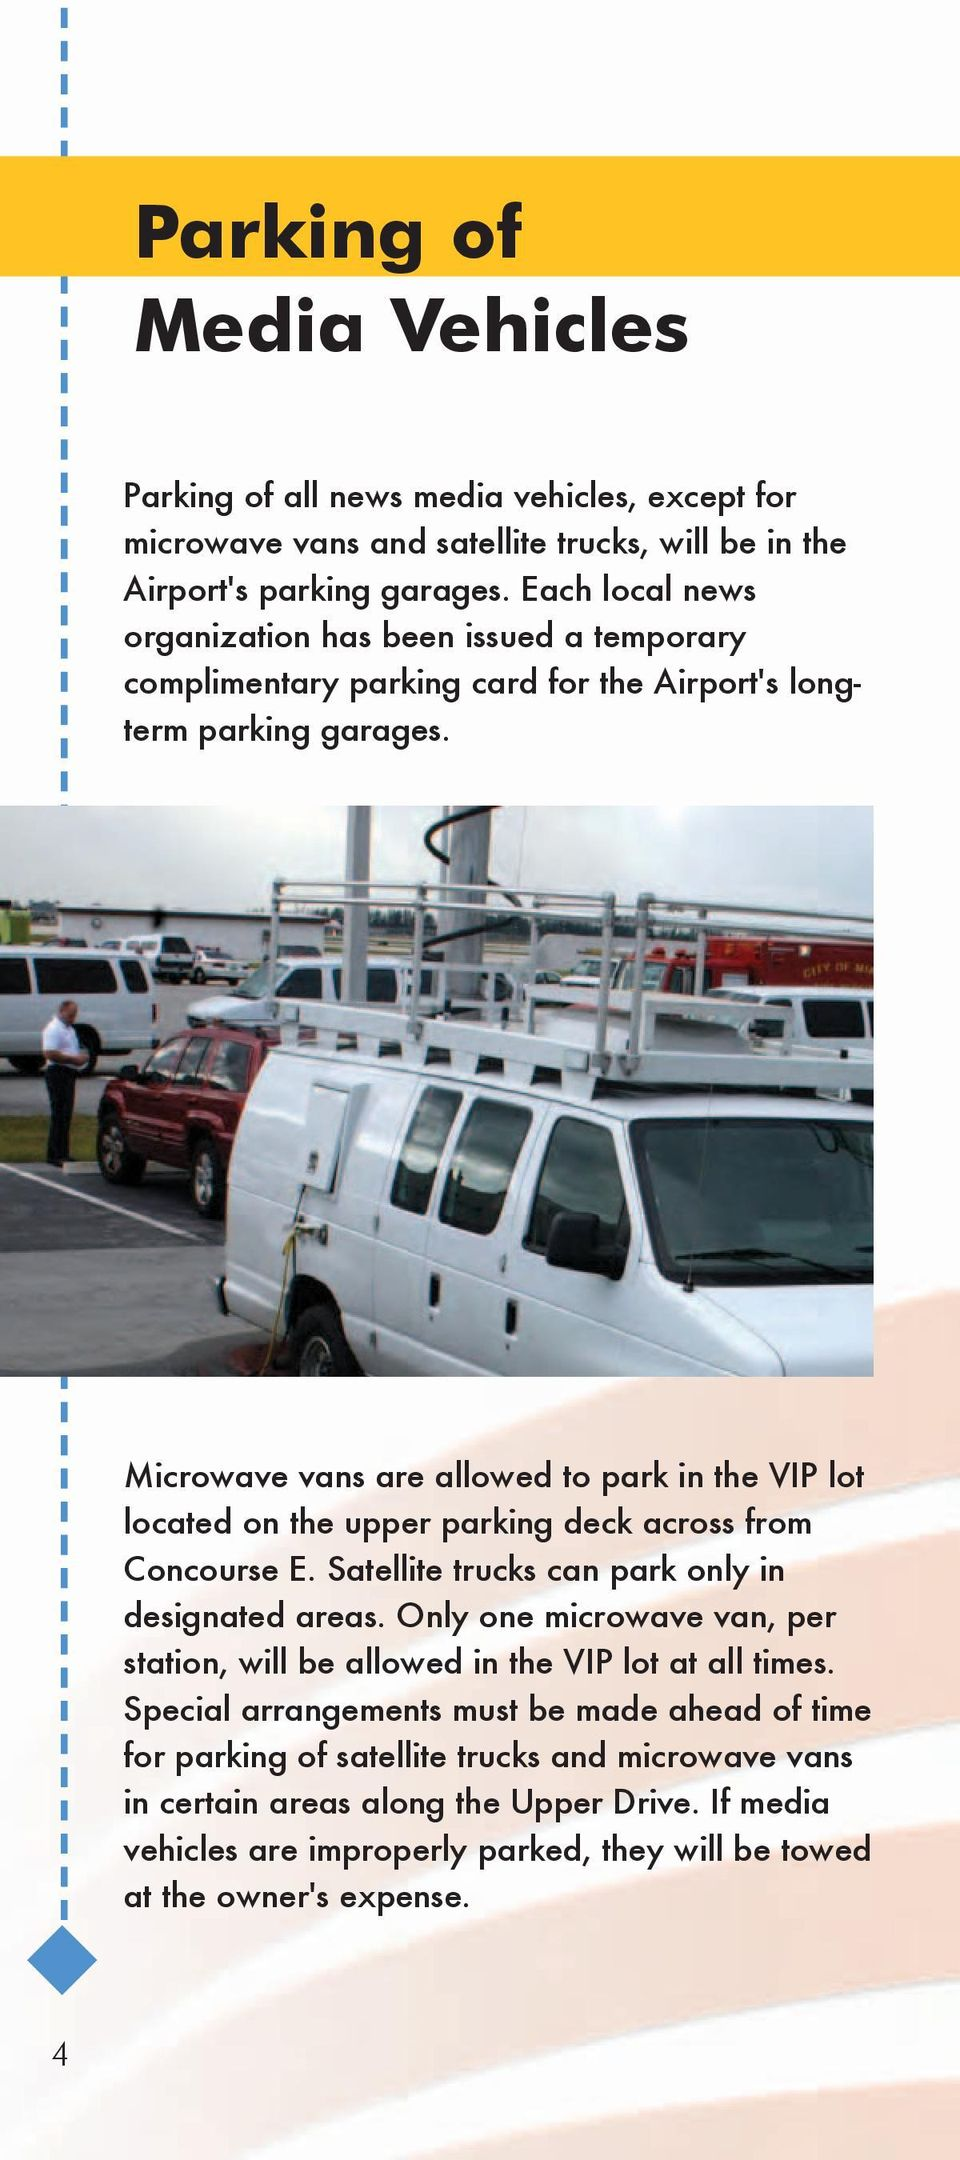 Microwave vans are allowed to park in the VIP lot located on the upper parking deck across from Concourse E. Satellite trucks can park only in designated areas.